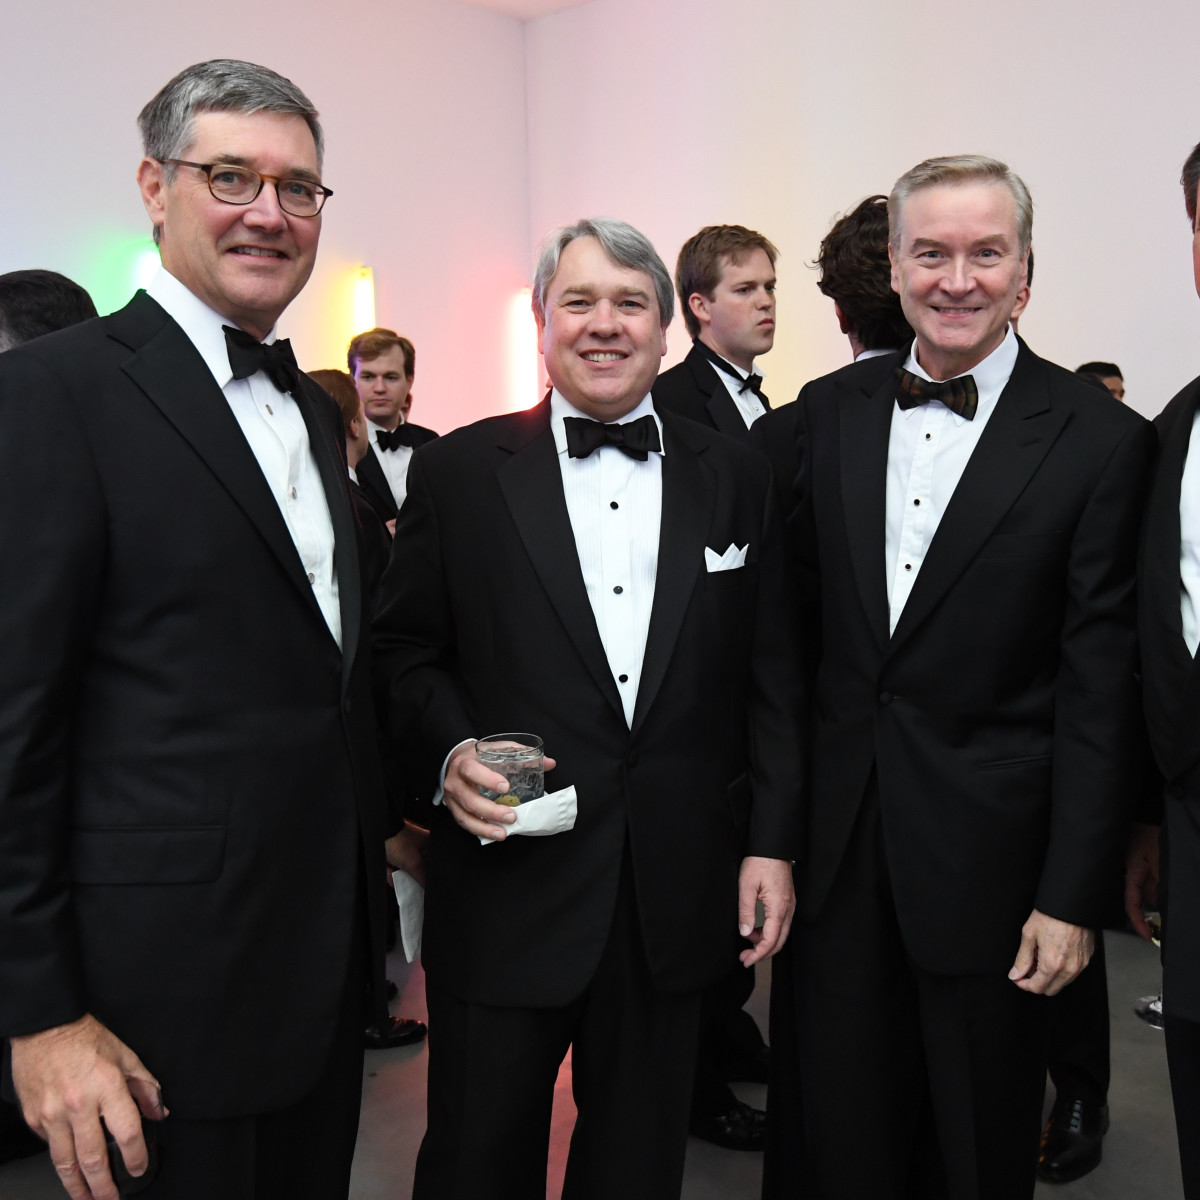 Men of Menil 2016 Bill Curtis, Reggie Smith, David Pustka, and Jim Higgason